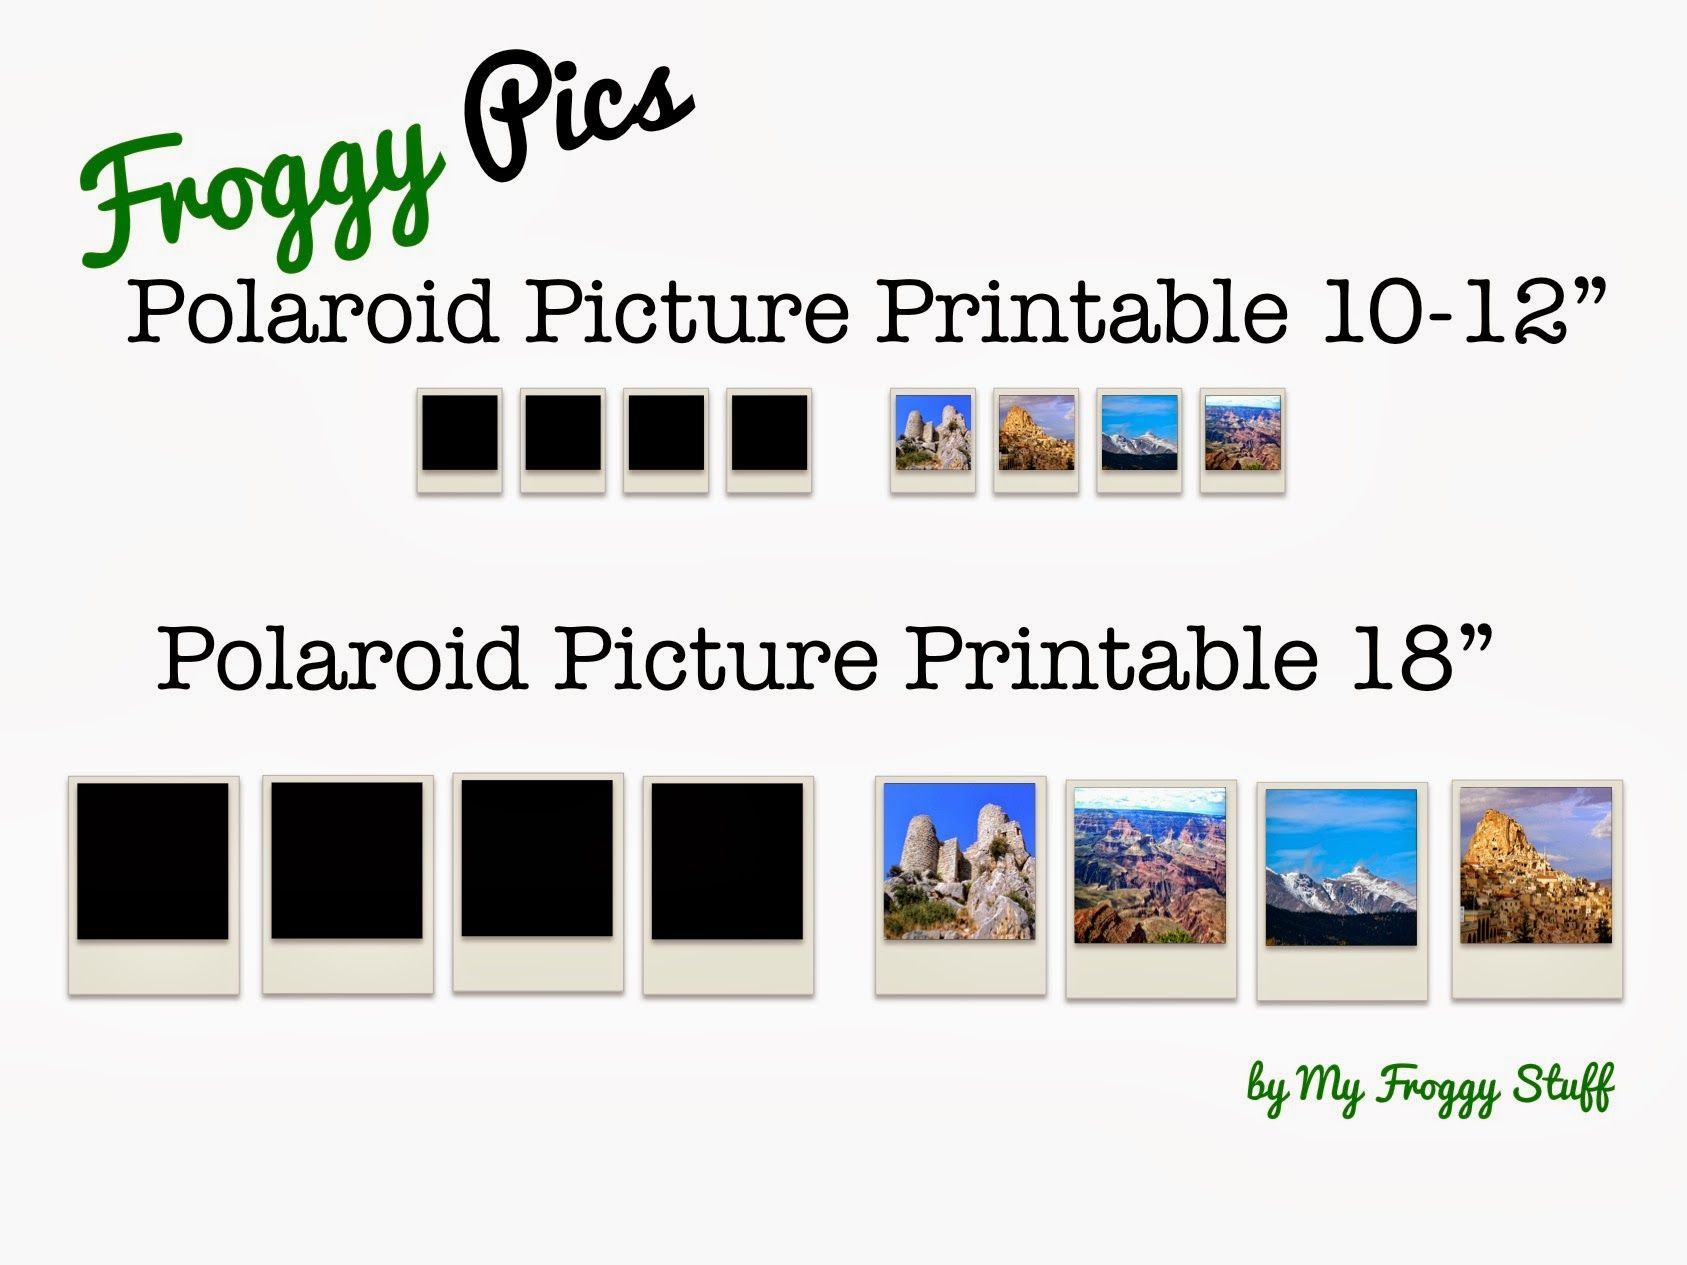 This is a picture of Inventive Froggy Stuff Printable